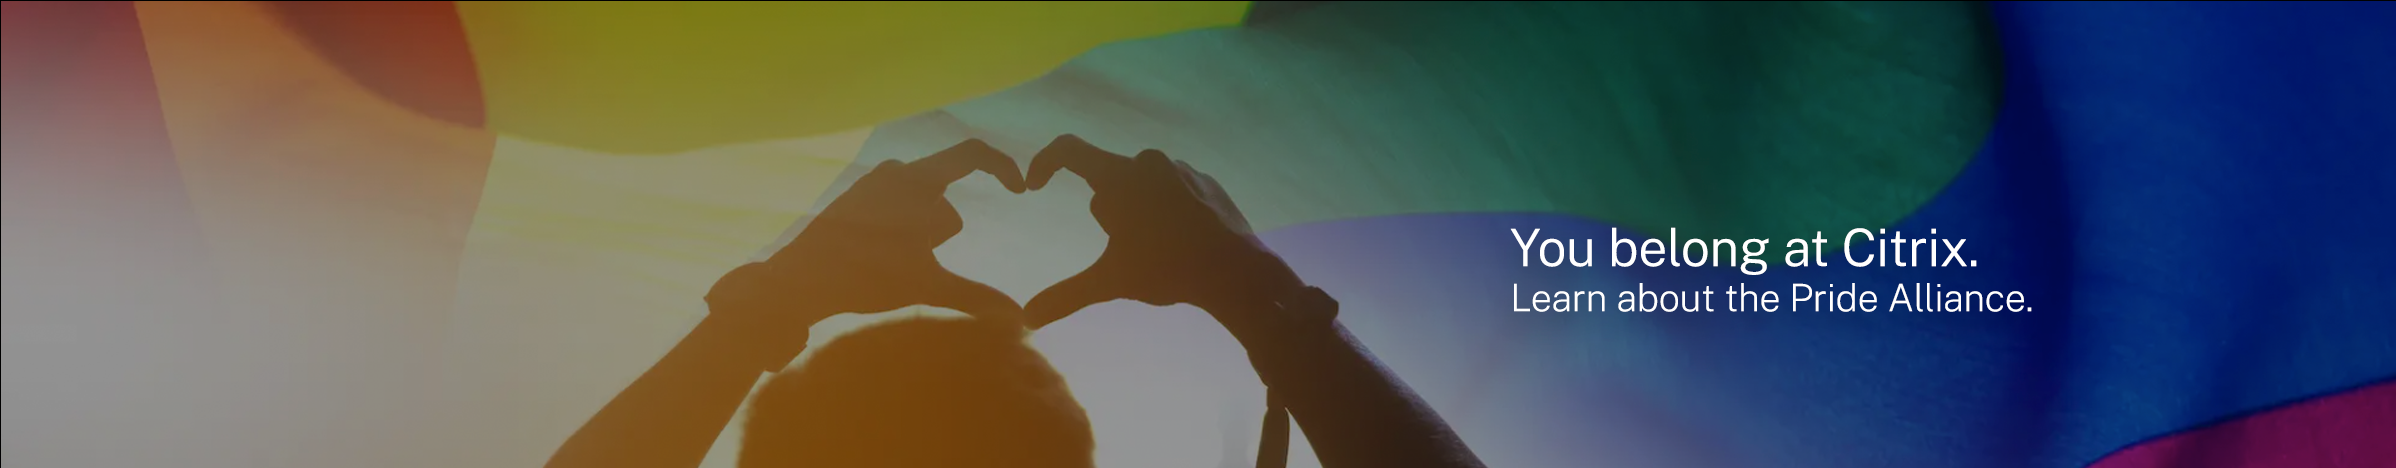 You Belong at Citrix. Learn about the Citrix Pride Alliance.